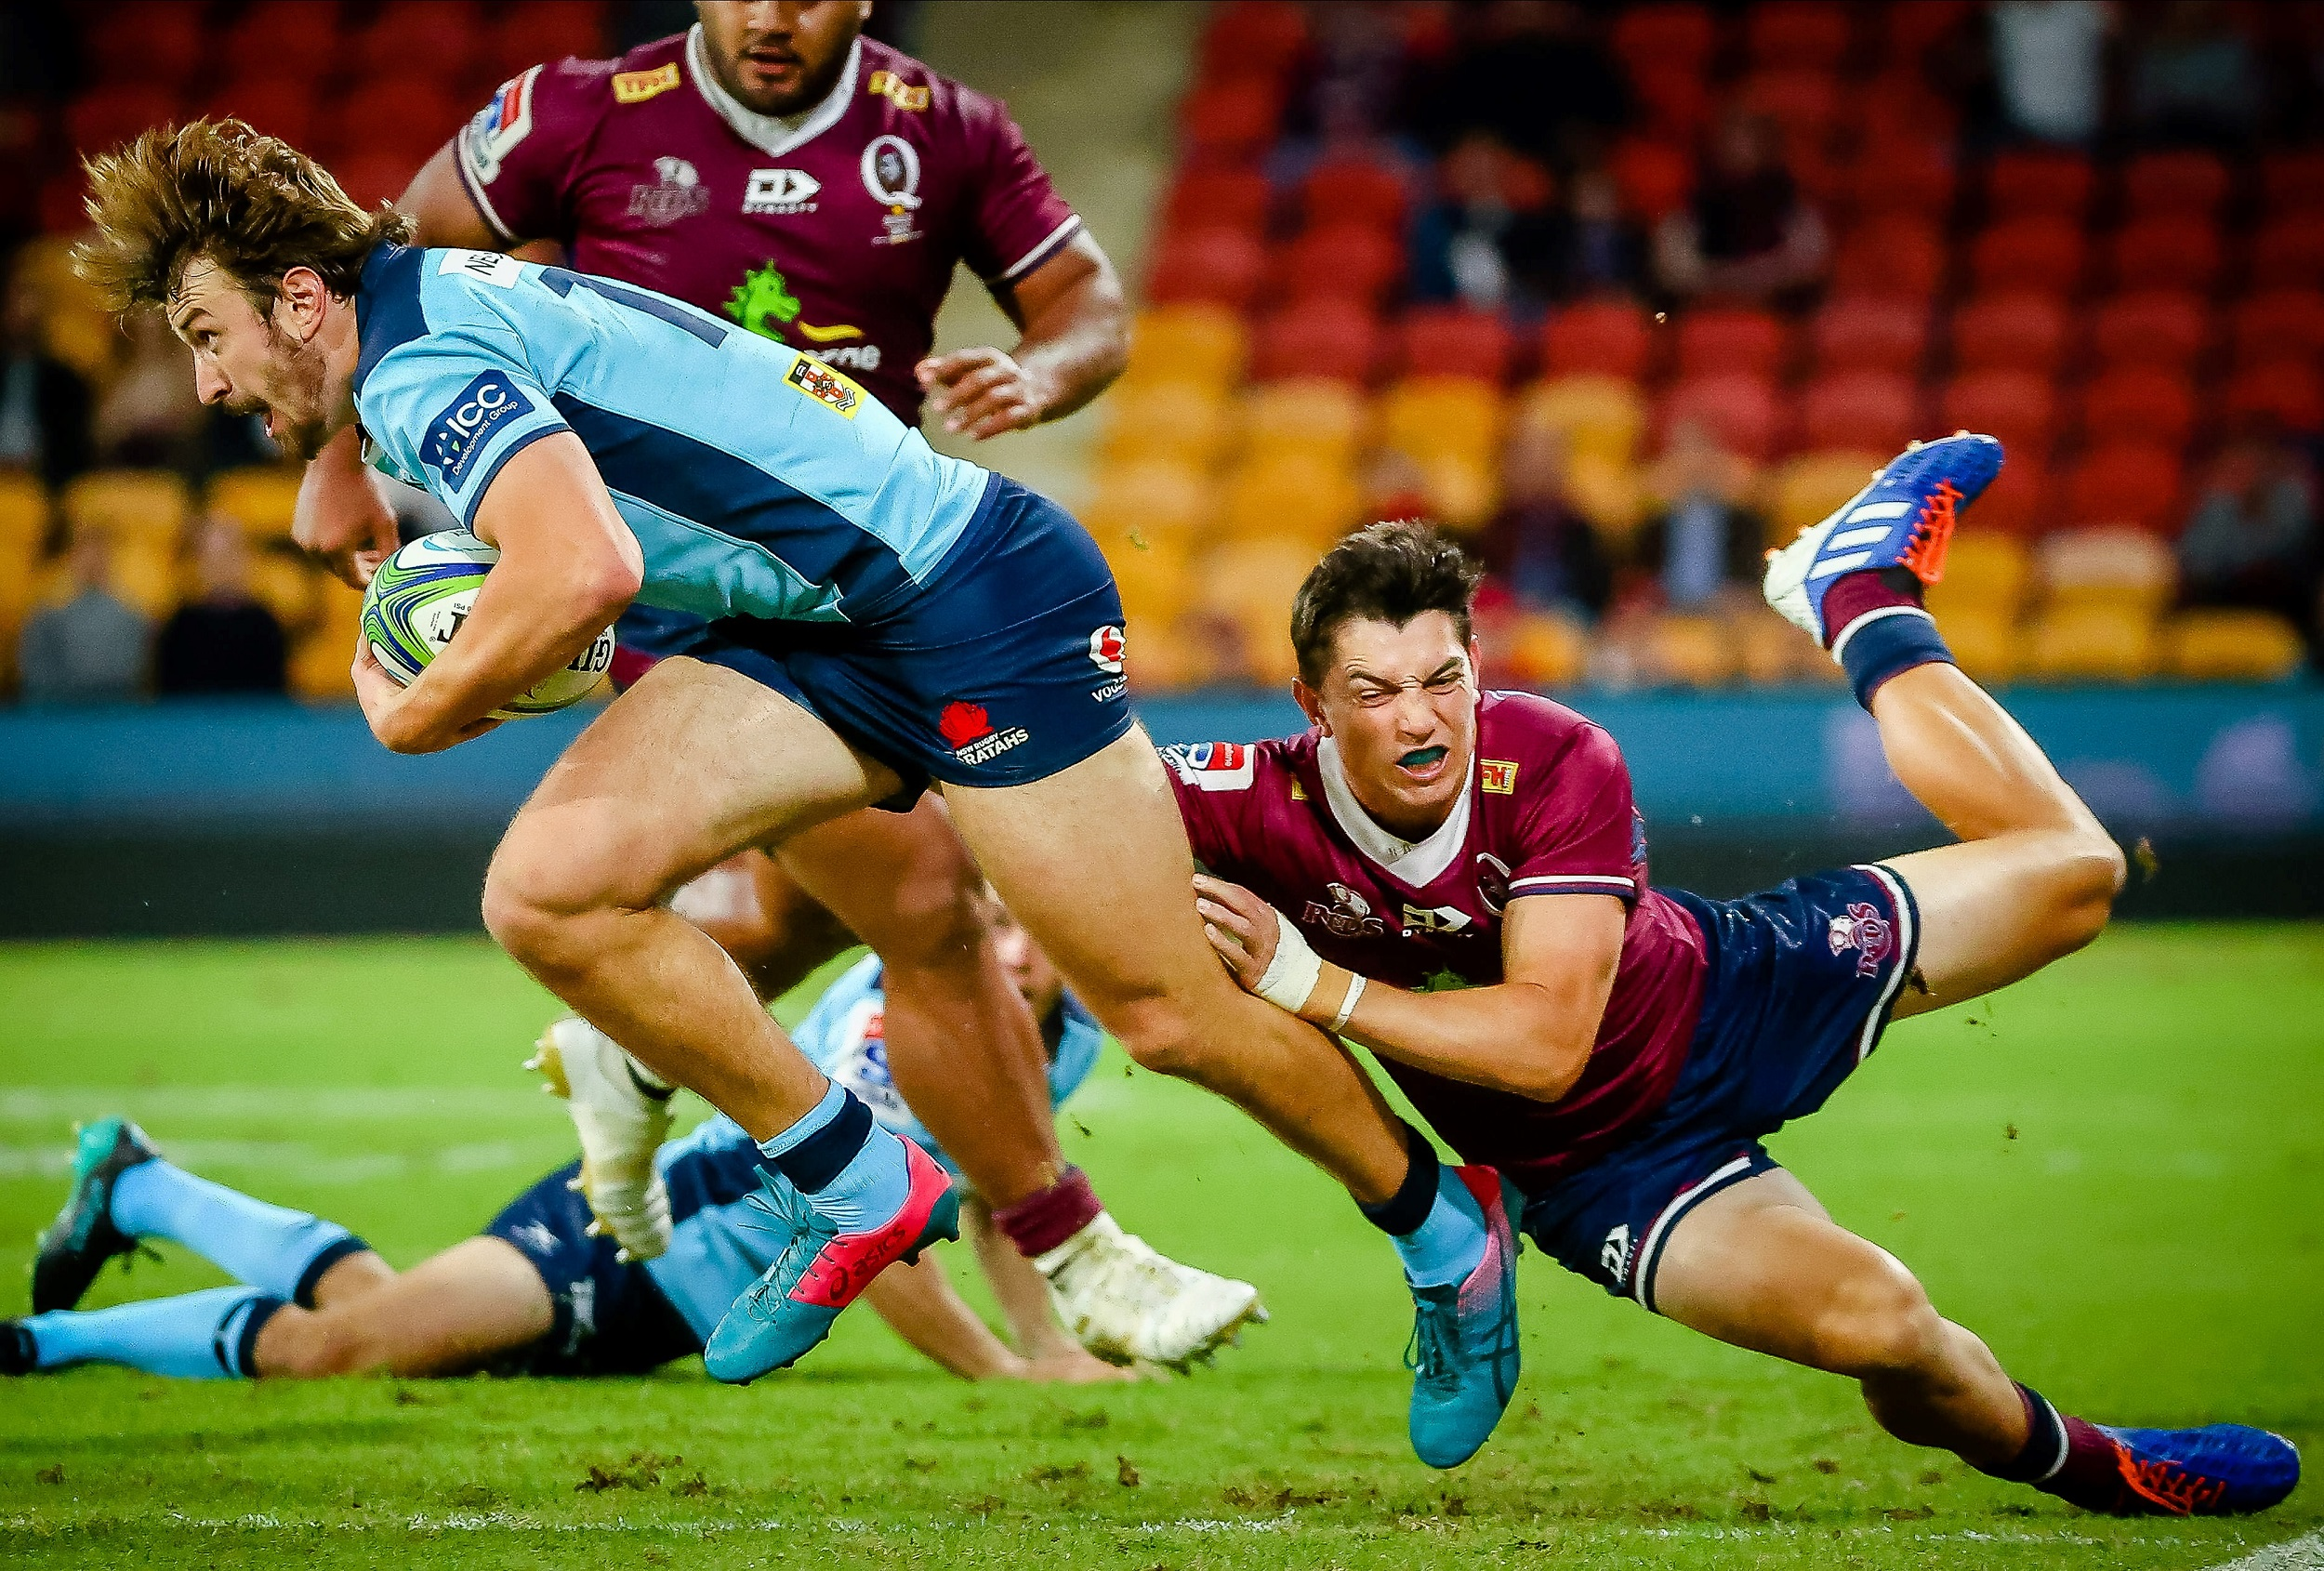 Waratahs' James Ramm (L) is tackled by Reds' Jock Campbell during the Super Rugby match at Suncorp Stadium in Brisbane.